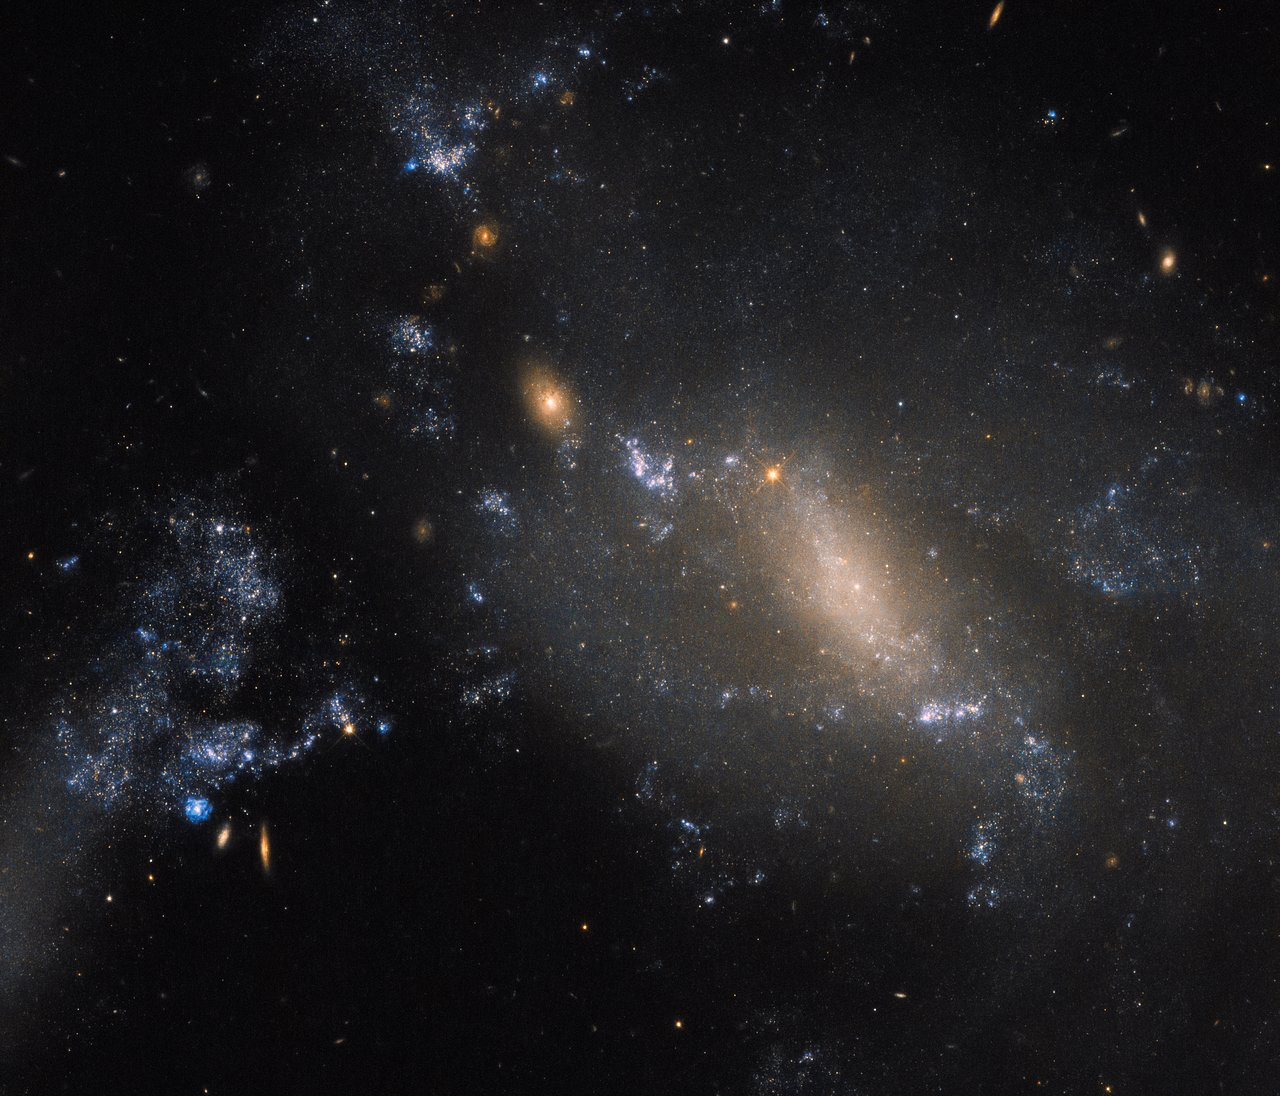 These galaxies are defying cosmic convention — @ESA #Hubble Picture of the Week. https://t.co/JecCeY2LrV https://t.co/iSvxTUxycE